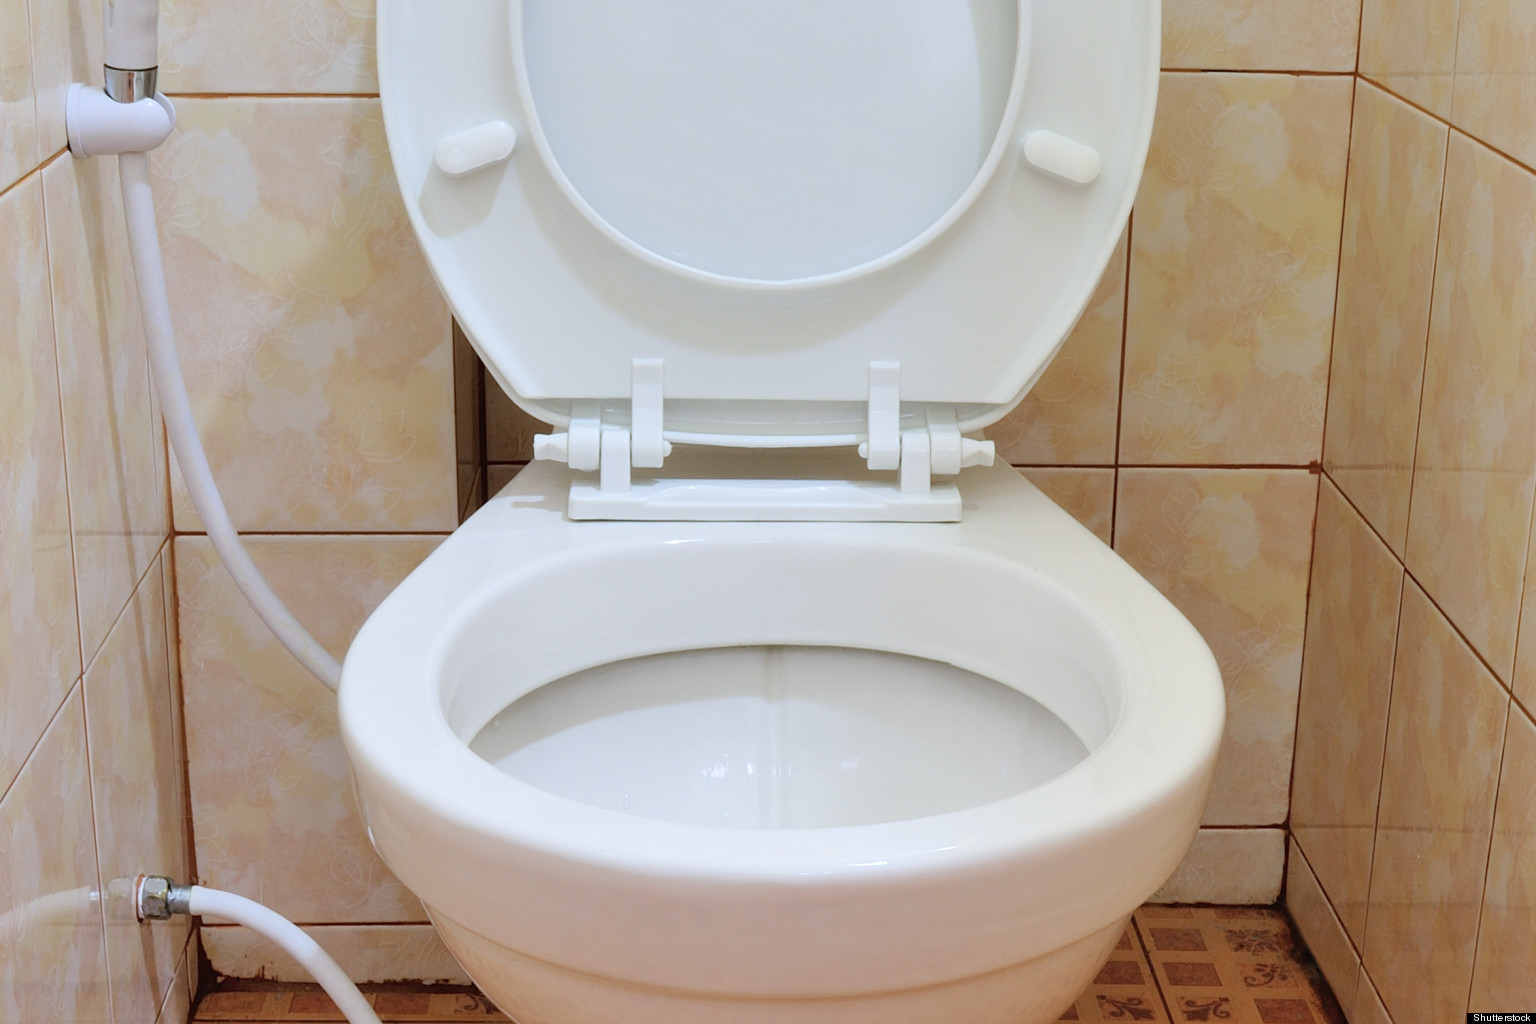 how to clear a stopped up toilet